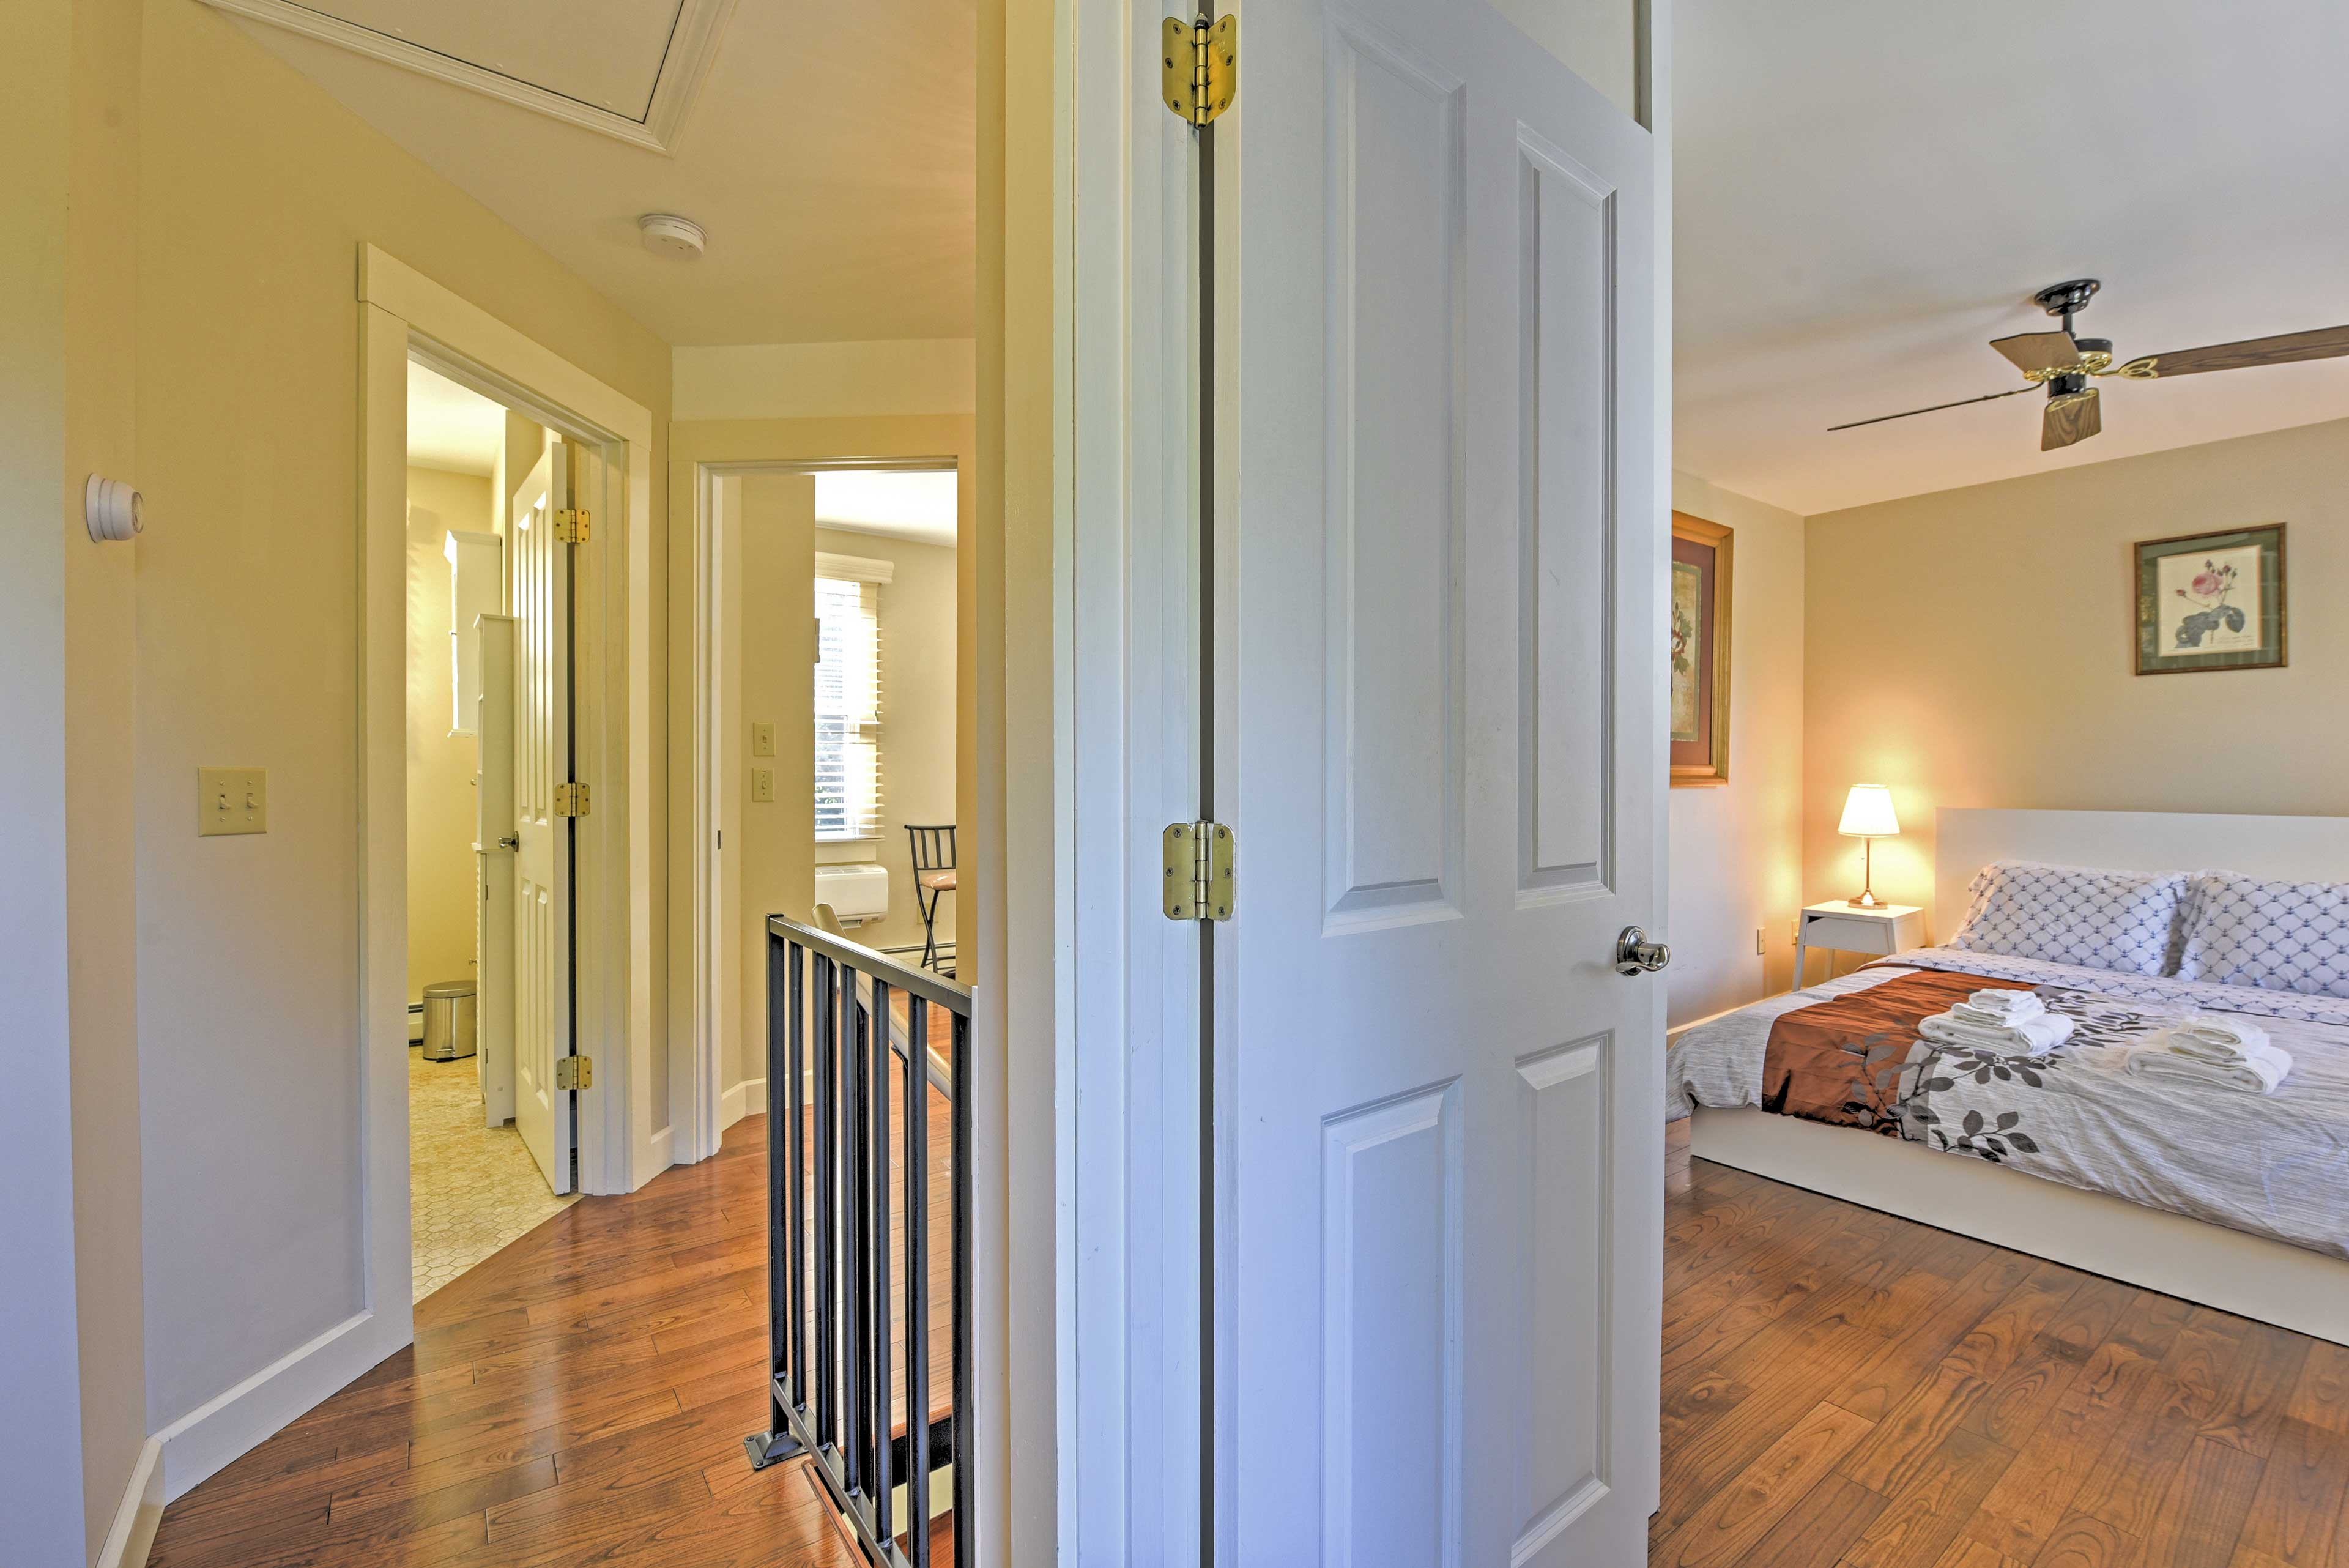 Two comfortable bedrooms are located on the upper level.